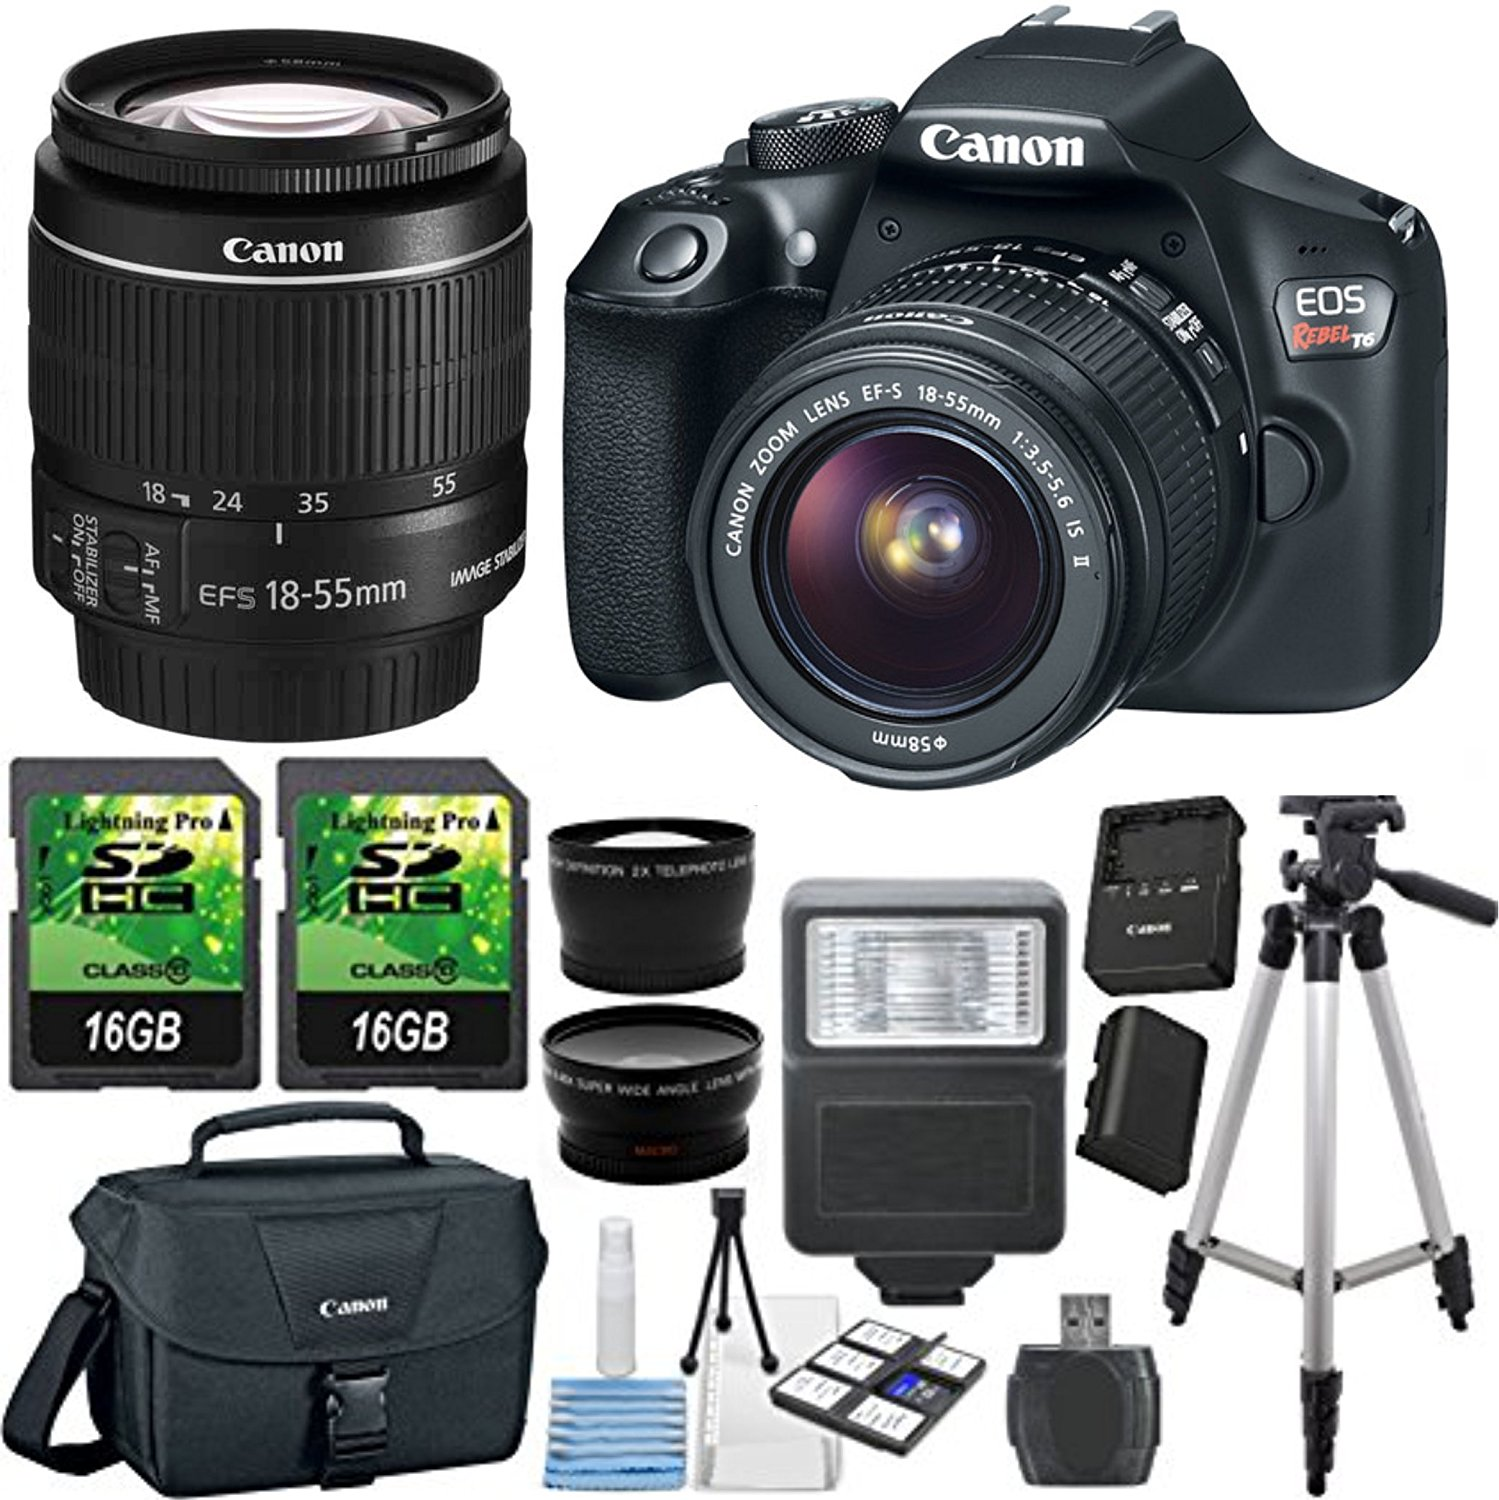 Cheap High Speed Camera Canon Find Deals On Eos 80d Wi Fi Dslr With 18 200mm Get Quotations Rebel T6 Digital Slr Kit Ef S 55mm F